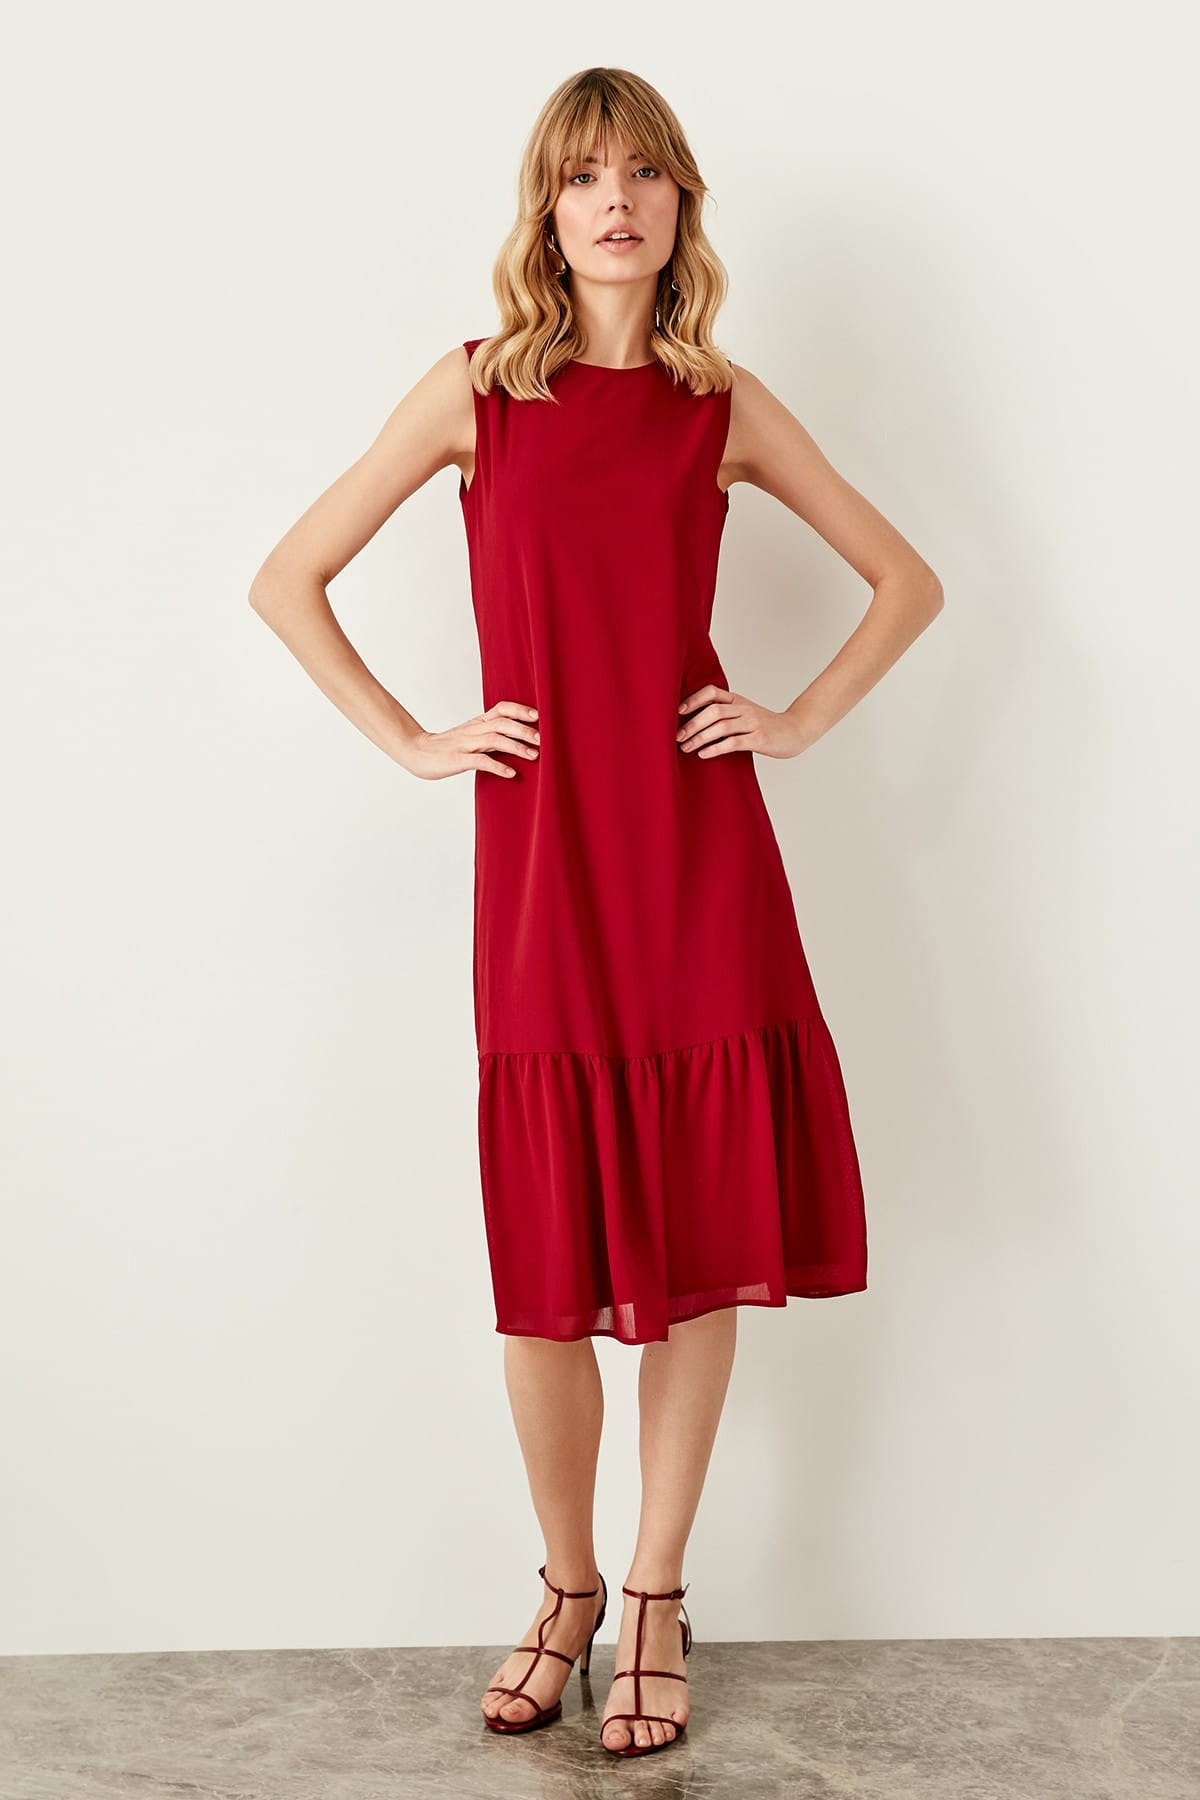 Trendyol Burgundy Skirt, Hand-Wheel Dress